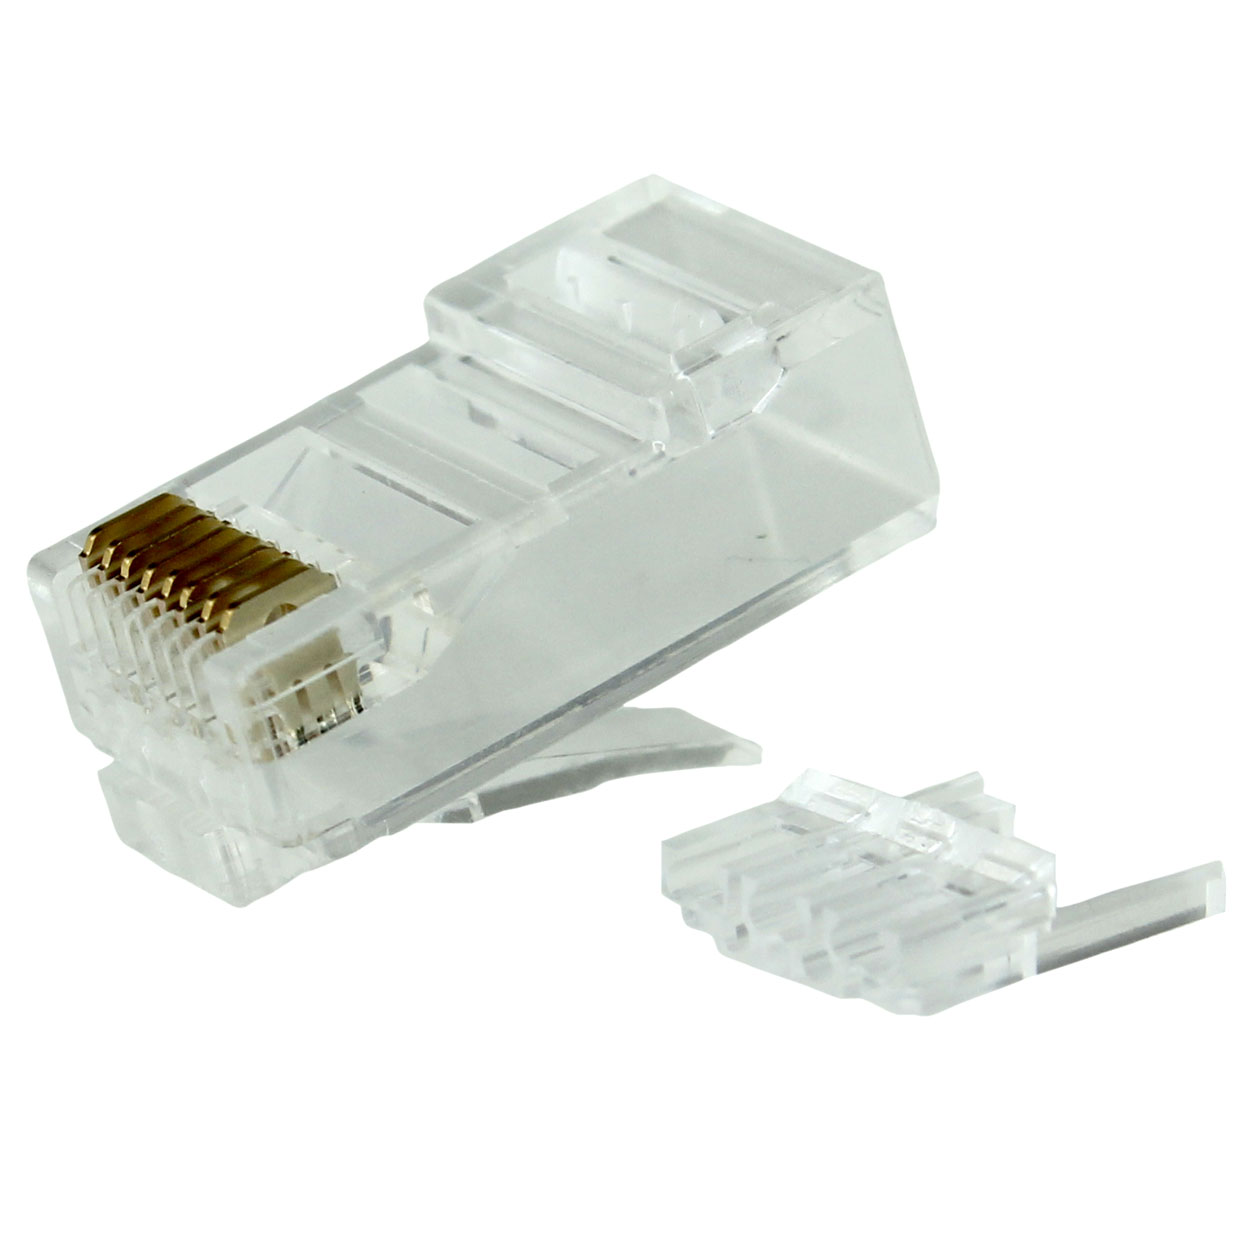 RJ45 Cat6 / Cat6a Long Body Modular Plug (2pcs Type) For AWG 24 - 26 Round Solid / Stranded Cable - 50pcs/pack